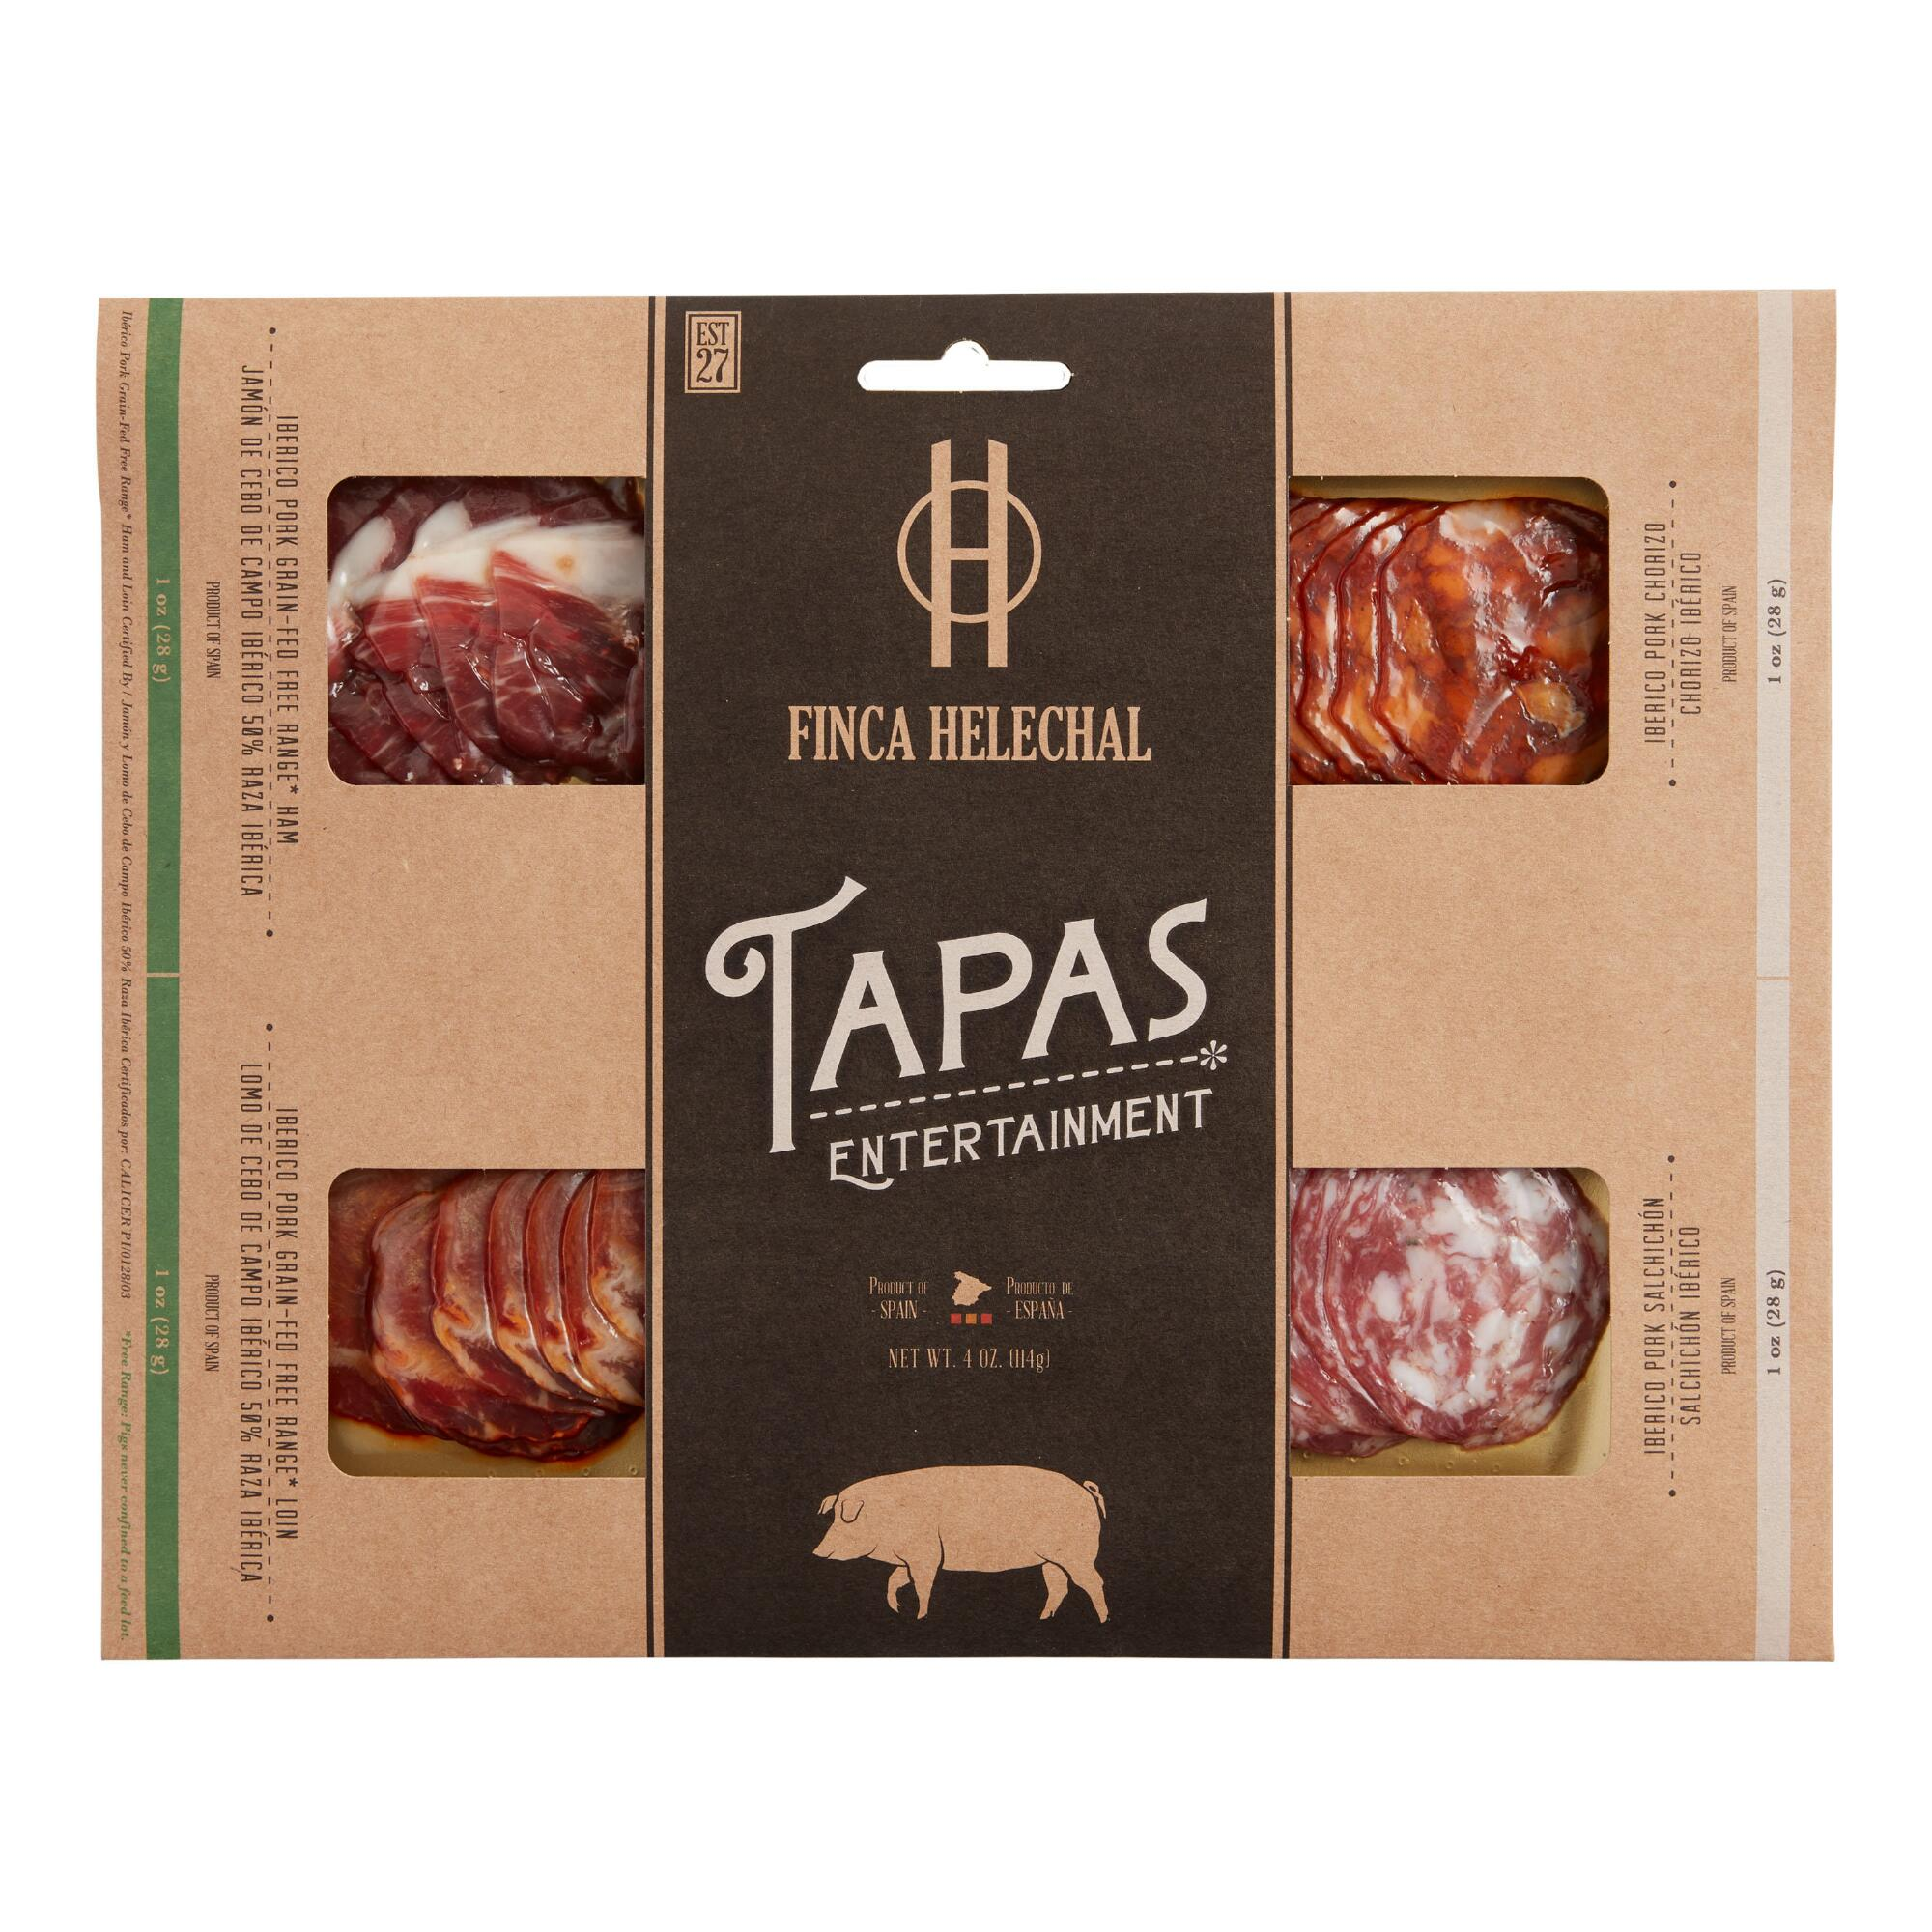 Finca Helechal Tapas Entertainment 4 Pack $19.99